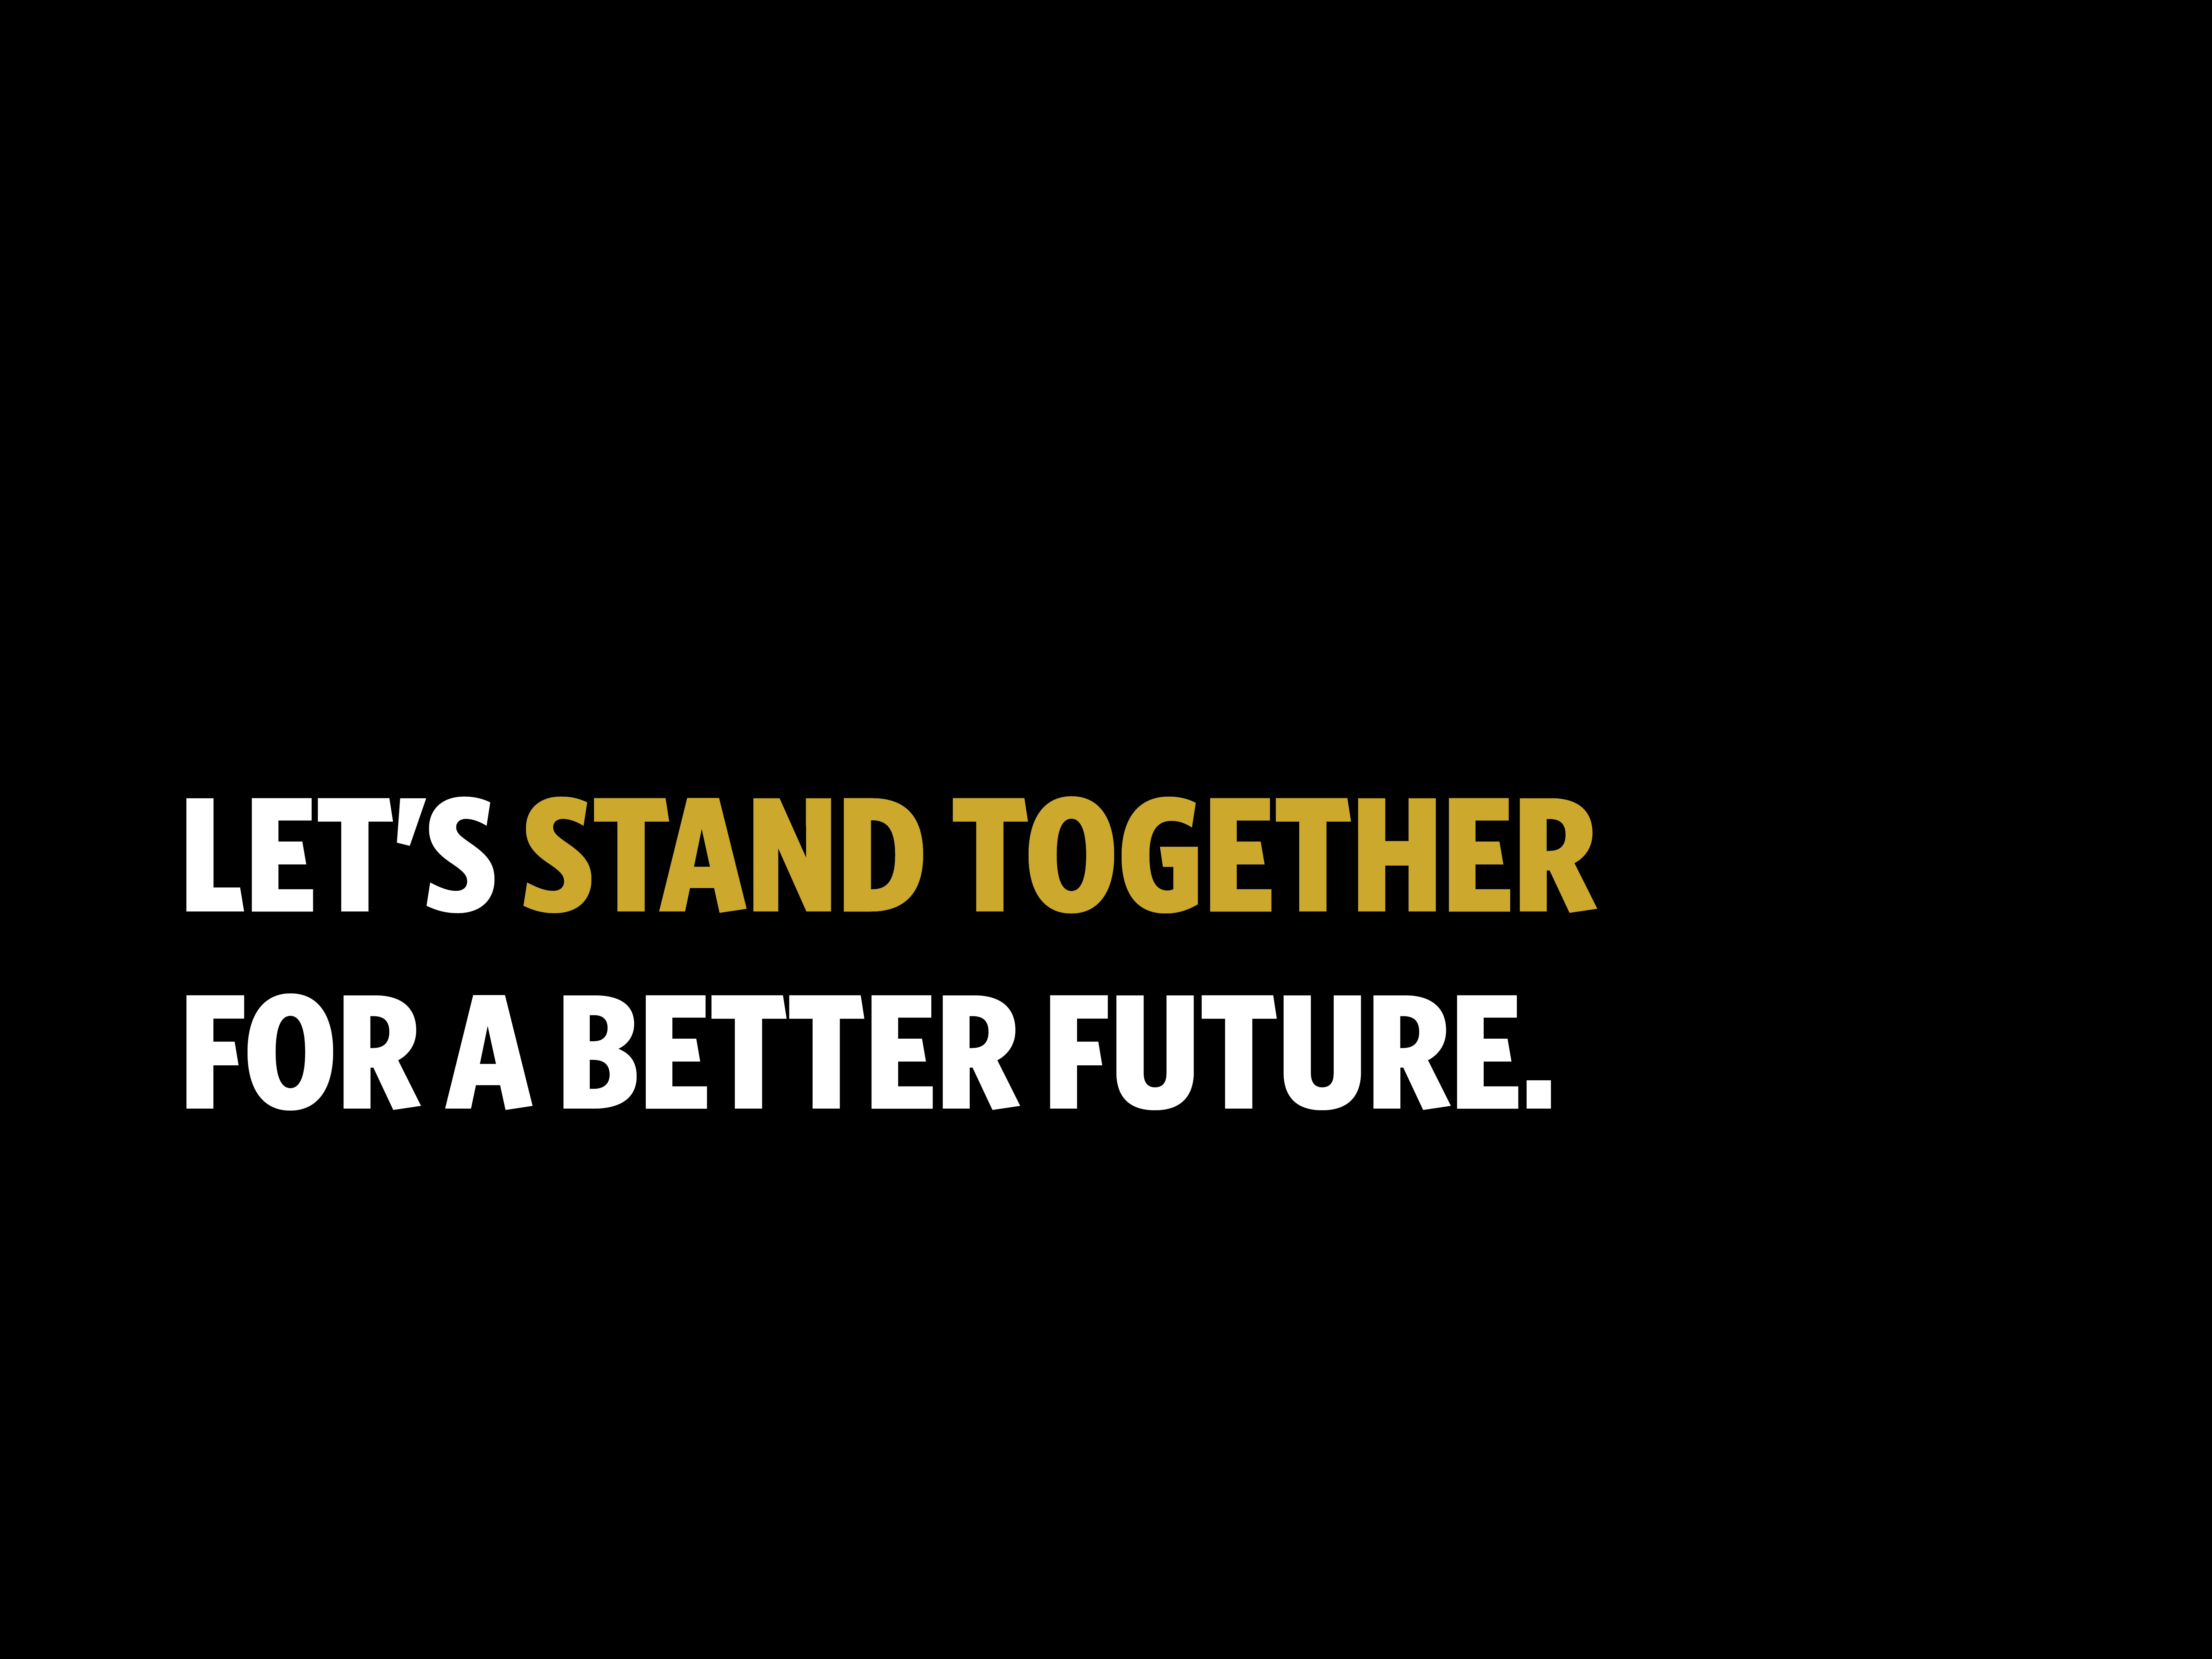 Let's stand together for a better future